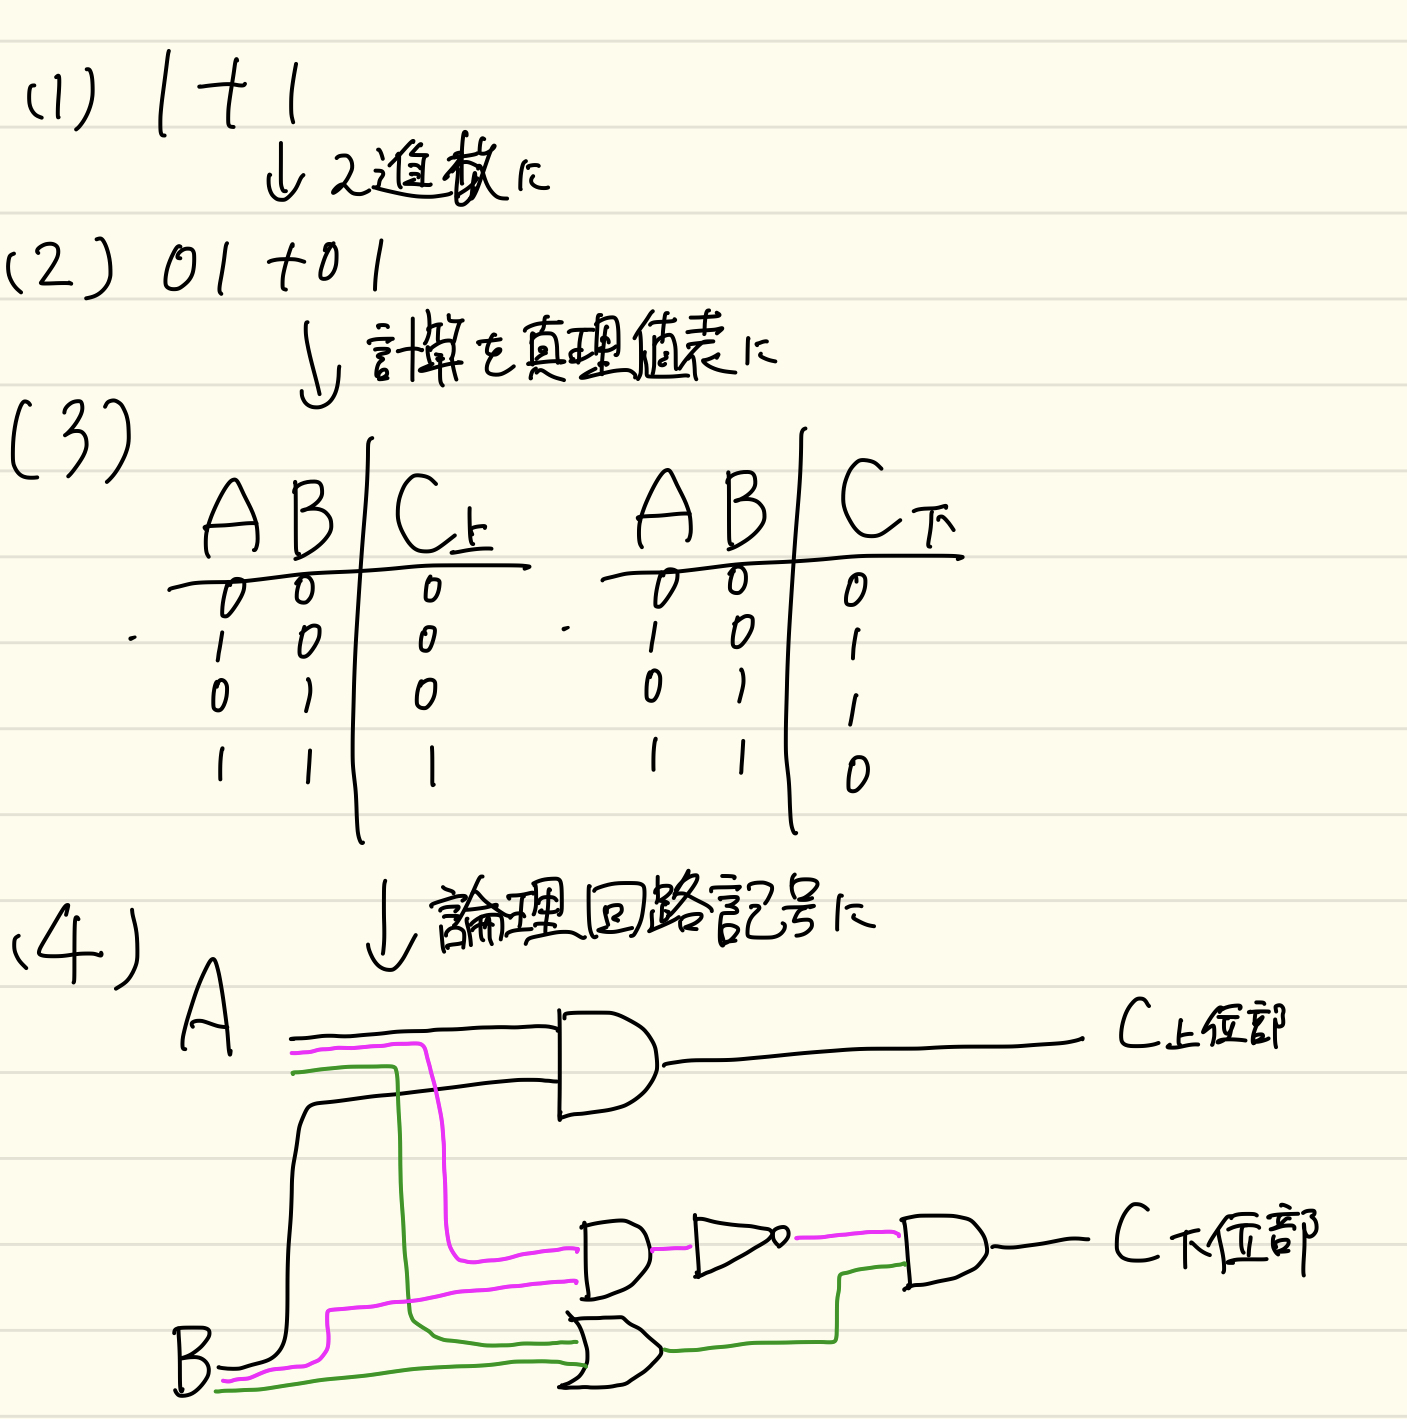 bool_logistic_circuit_1+1